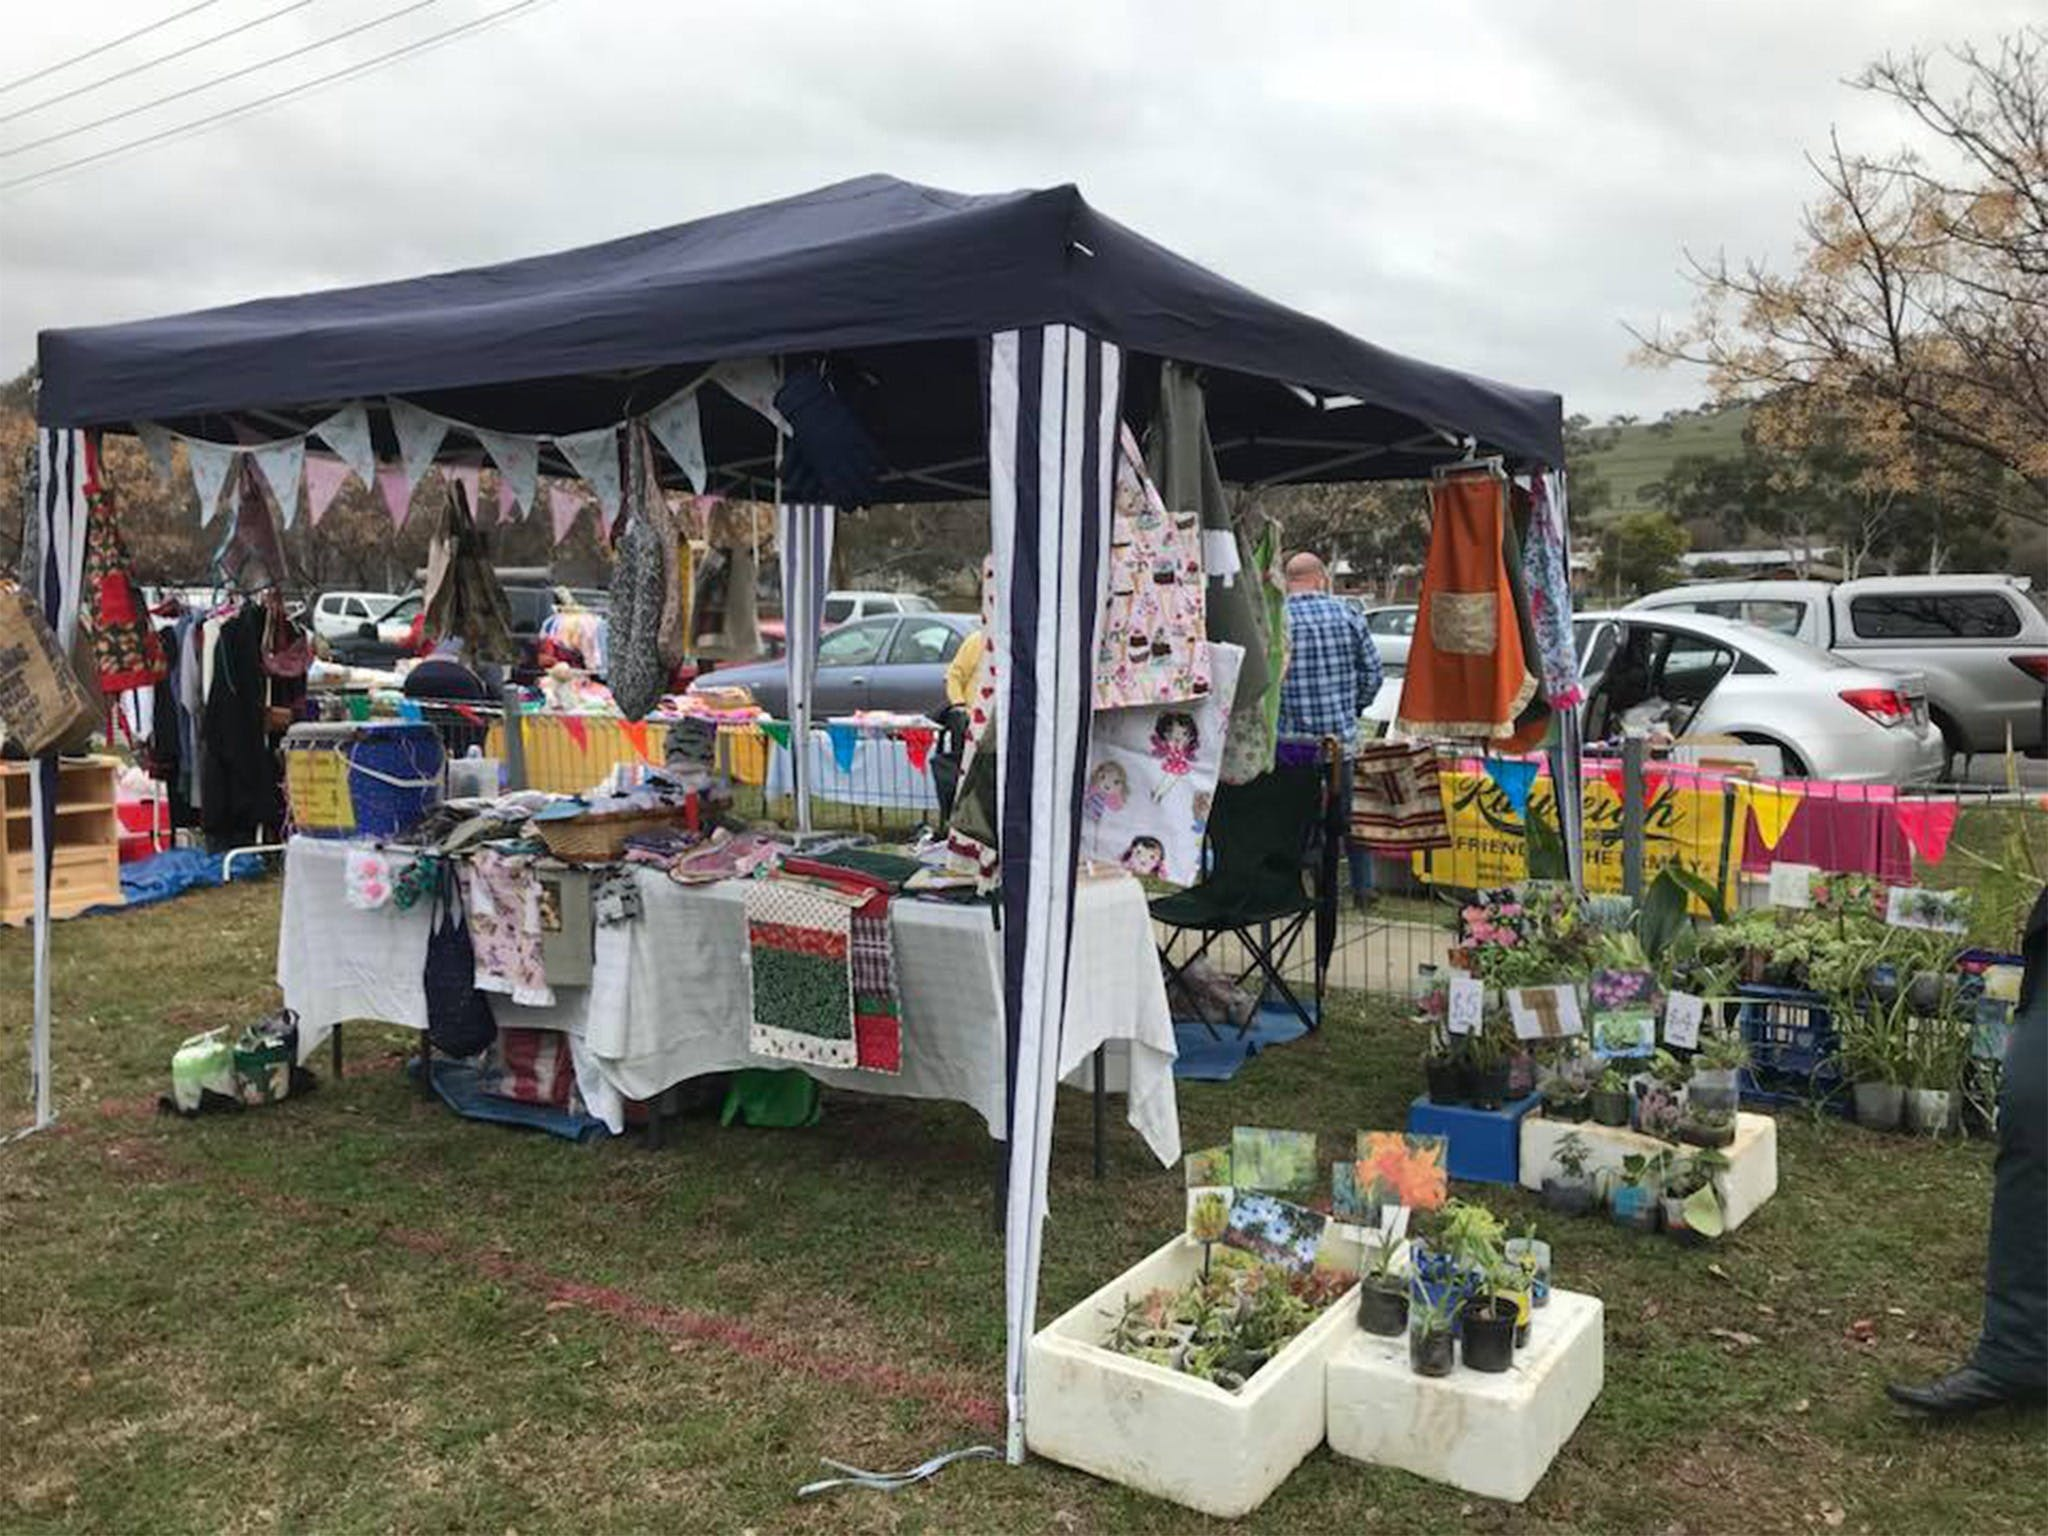 Perthville Village Fair - Accommodation Tasmania